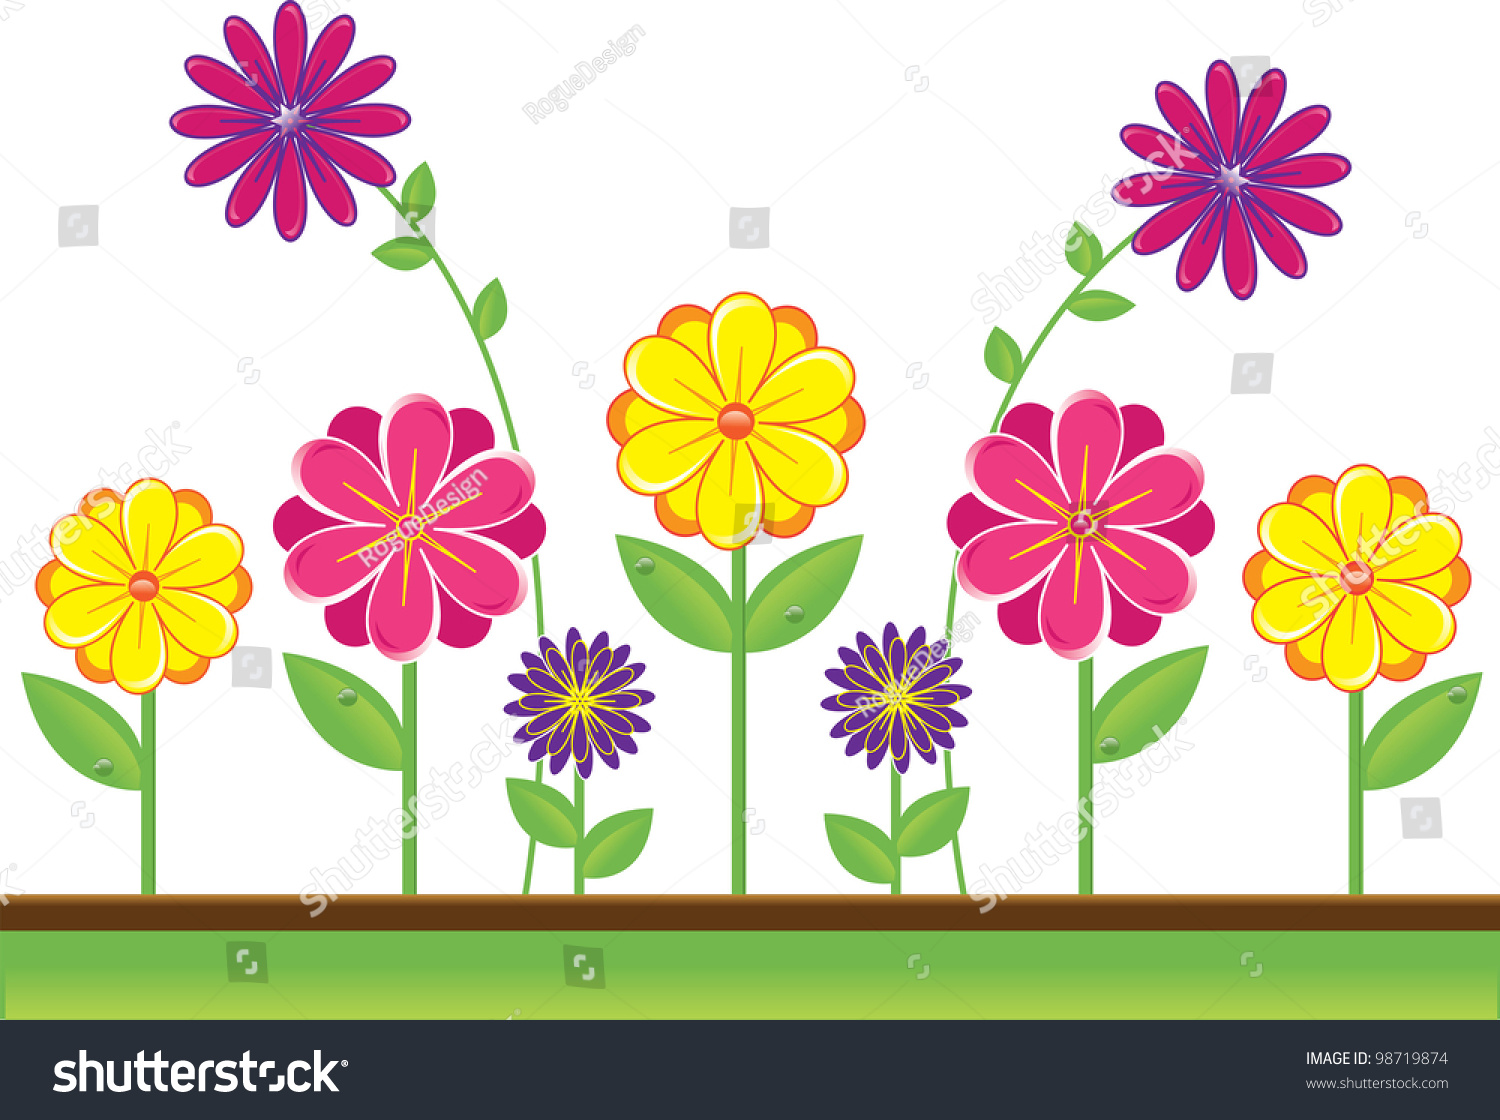 Cute spring flower - Clip Art Illustration Of Cute Yellow Pink And Purple Flowers Growing In The Spring